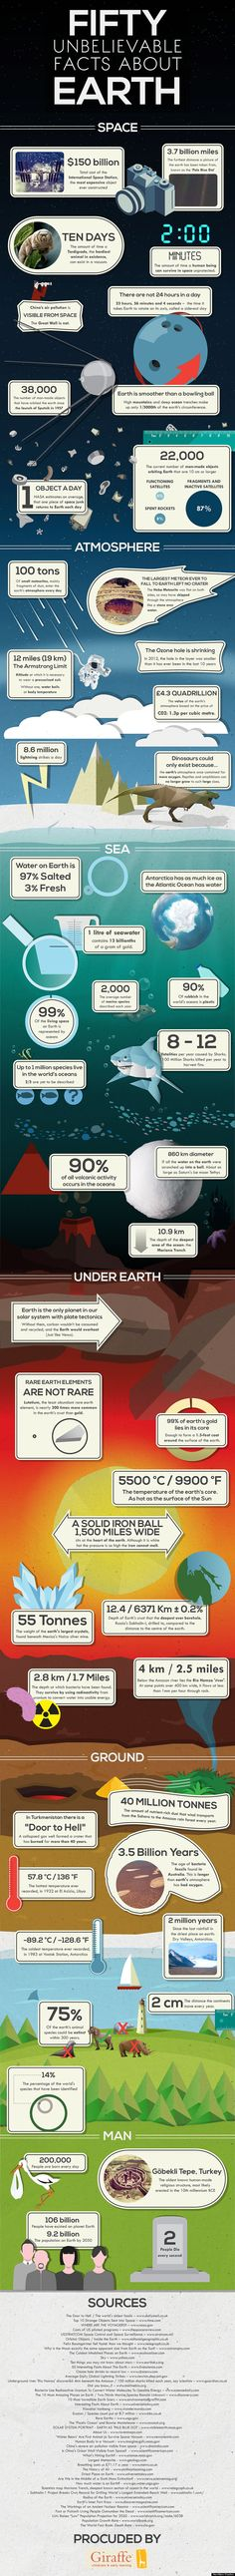 earth facts www.huffingtonpos...